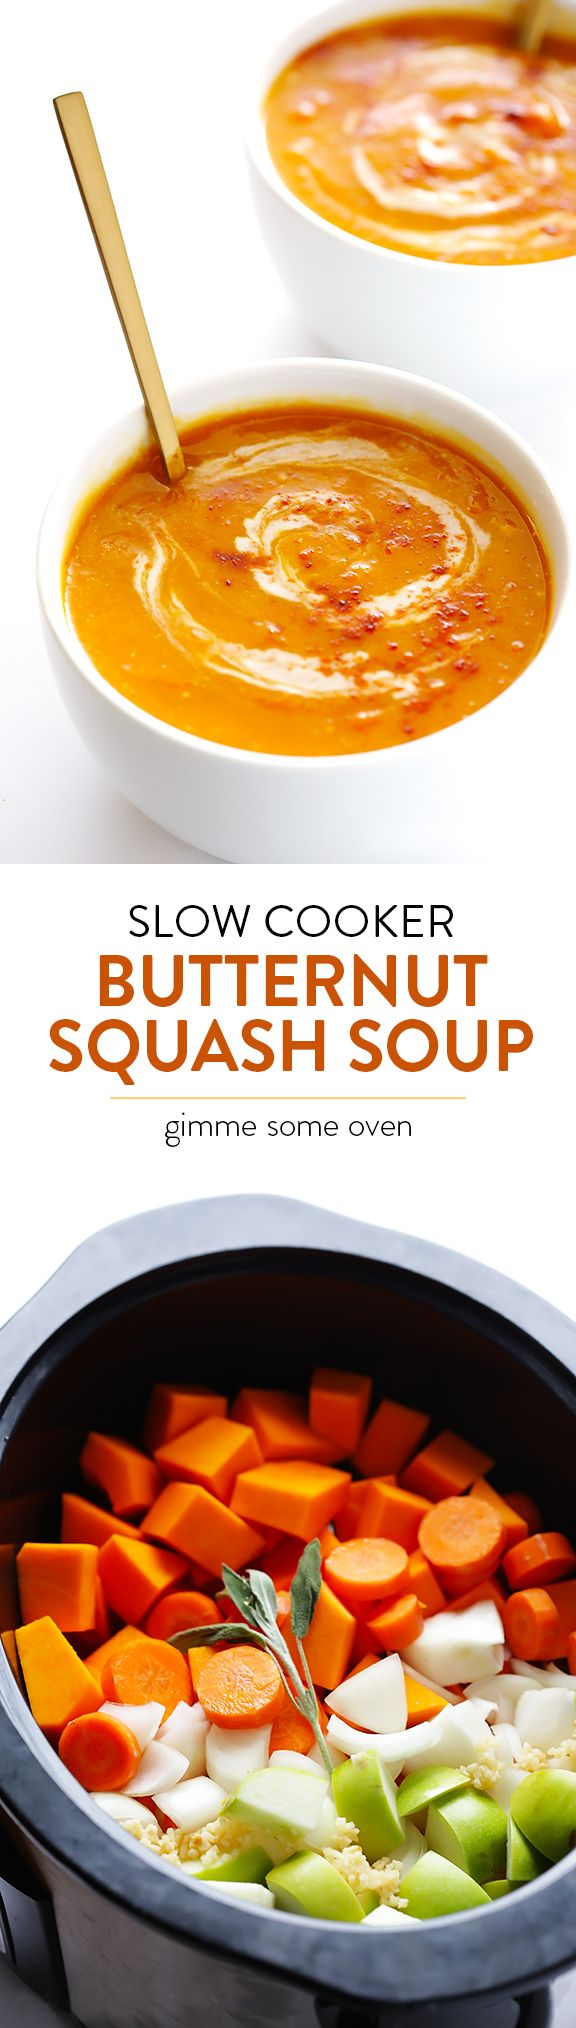 gel kayano 16 review This Slow Cooker Butternut Squash Soup recipe is incredibly easy to make in the crock pot  and so comforting and delicious  It  39 s also naturally vegan